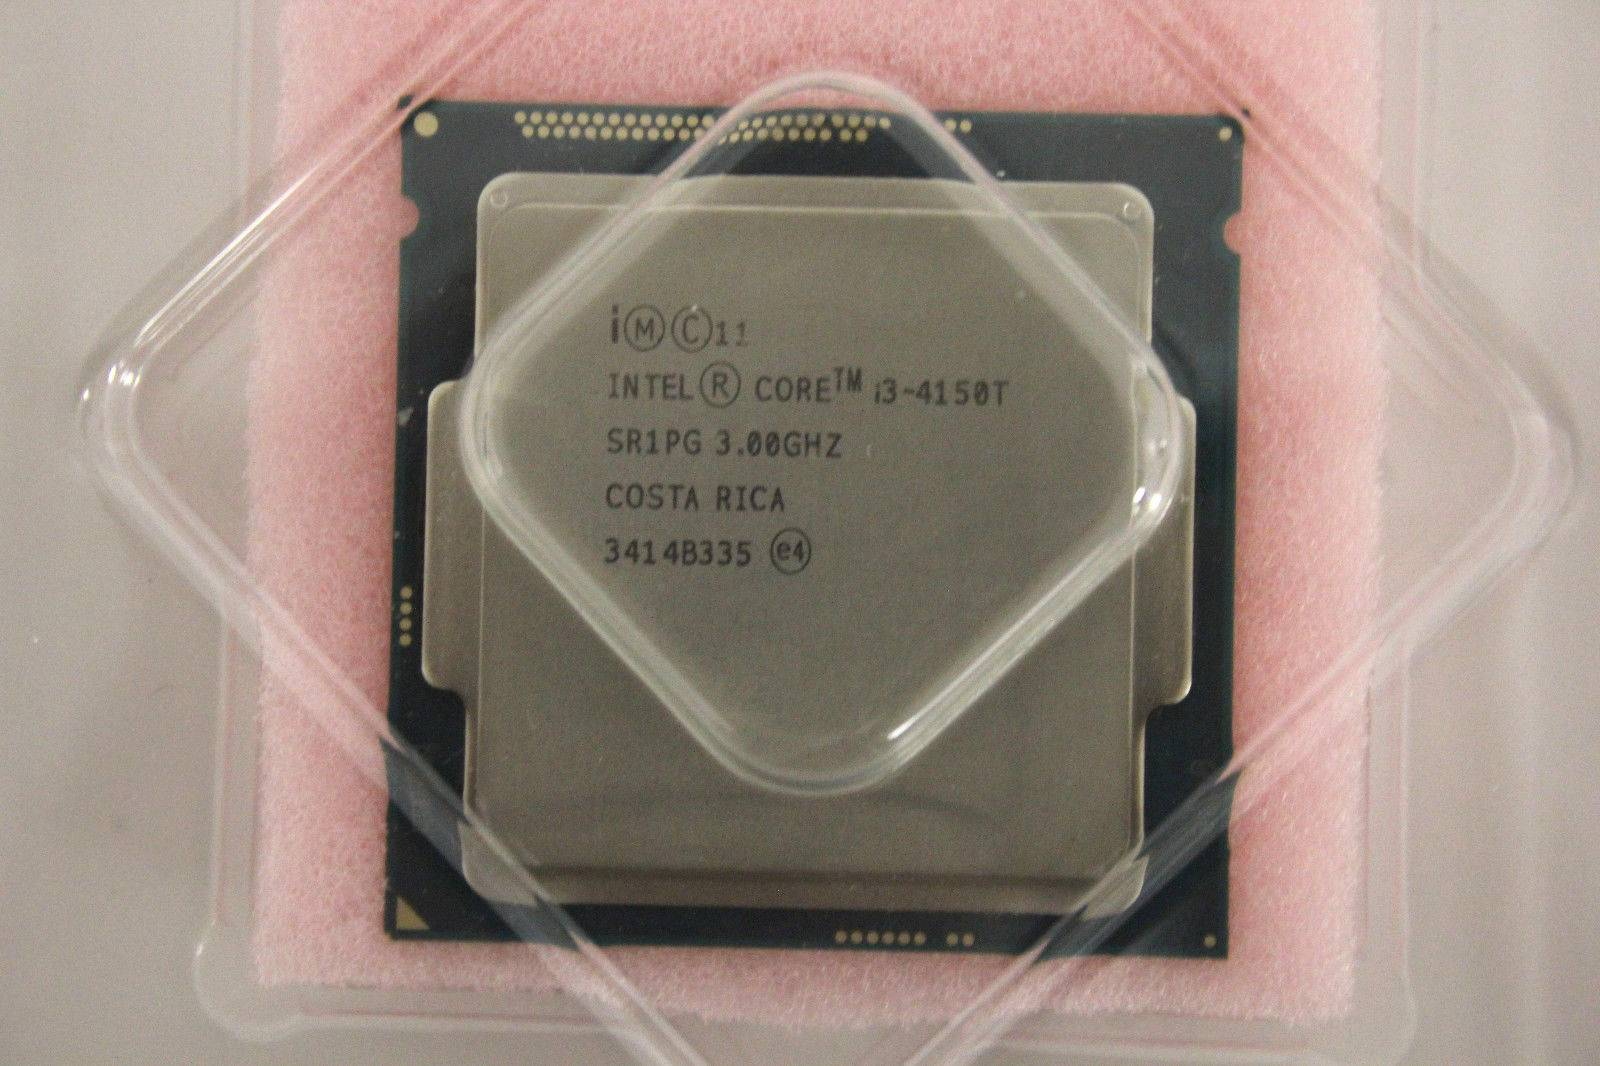 Intel Core i3-4150T SR1PG 3.0GHz Desktop CPU LGA1150/Socket Processor